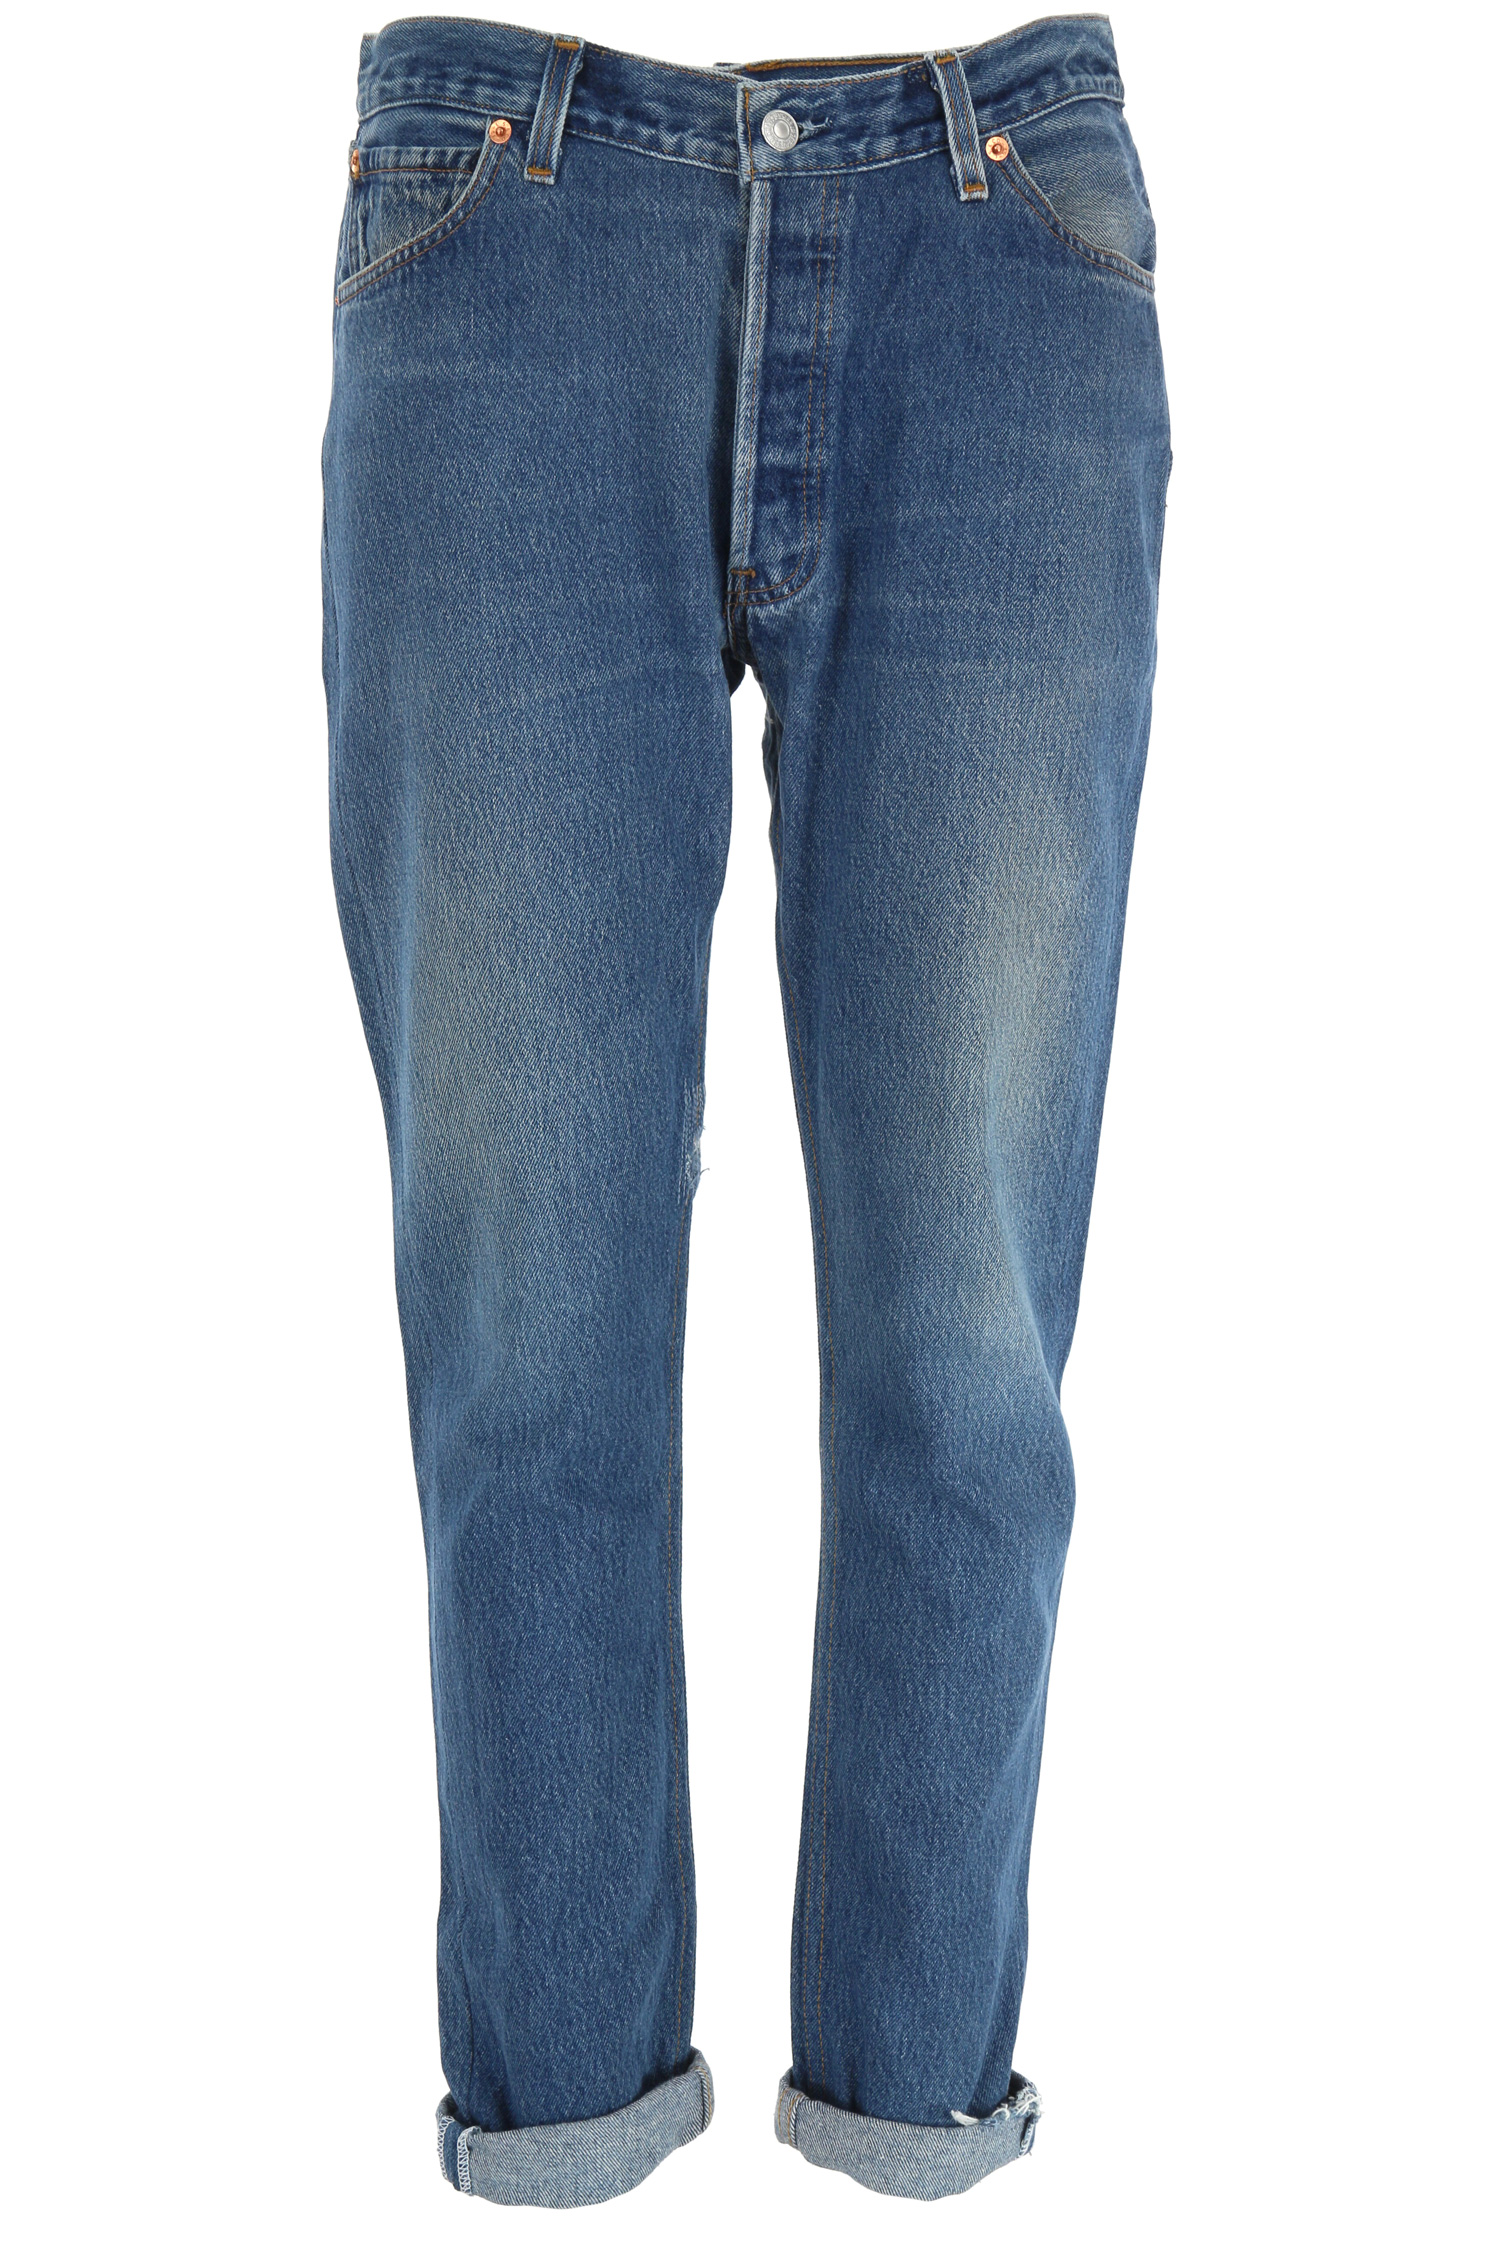 High Tech Toilette Jean Relaxed Straight Re / Done